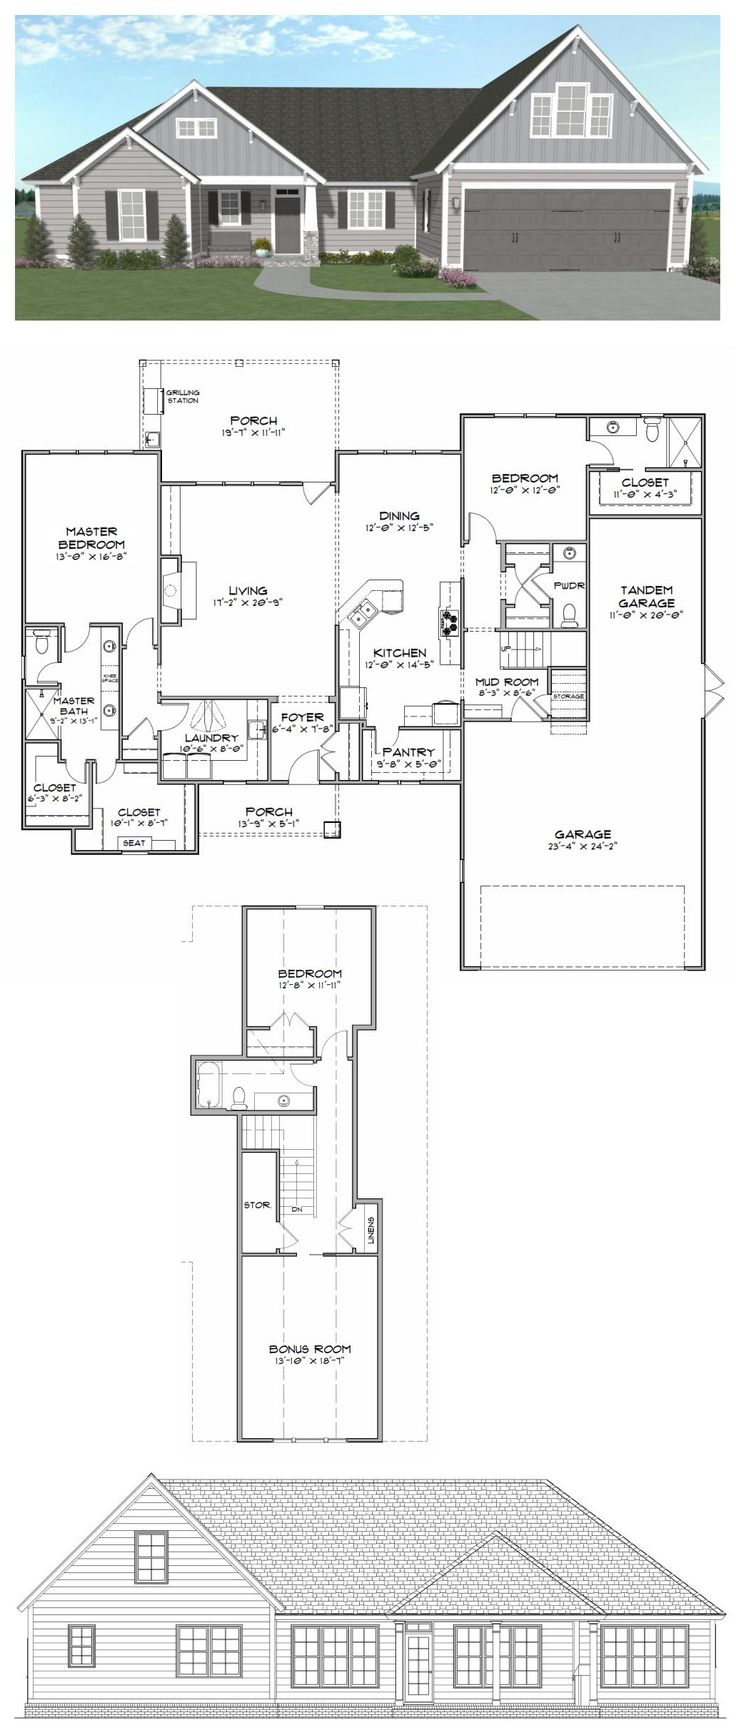 19 best house plans 2000 2800 sq ft images on pinterest for House plans sc